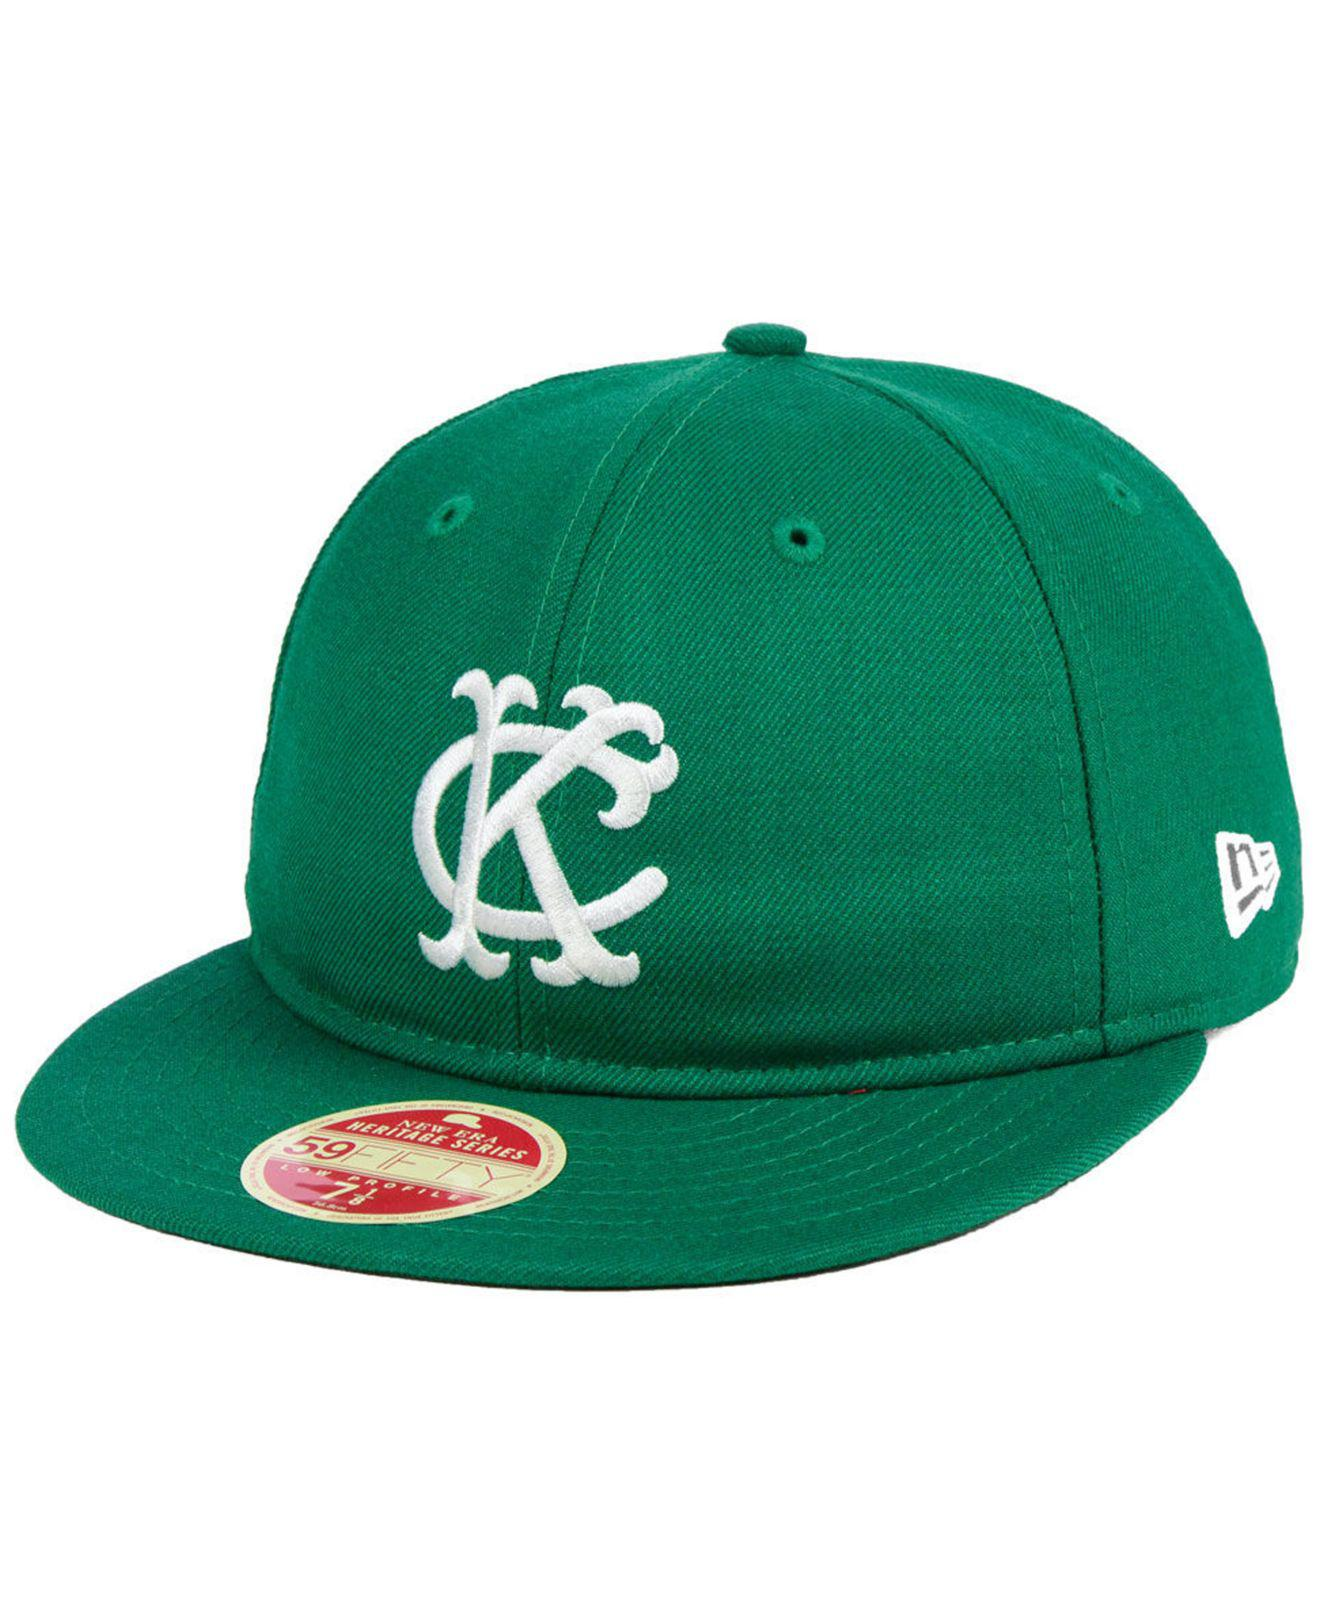 new style 5ac83 9d3b0 KTZ. Men s Green Kansas City Athletics Heritage Retro Classic 59fifty  Fitted Cap